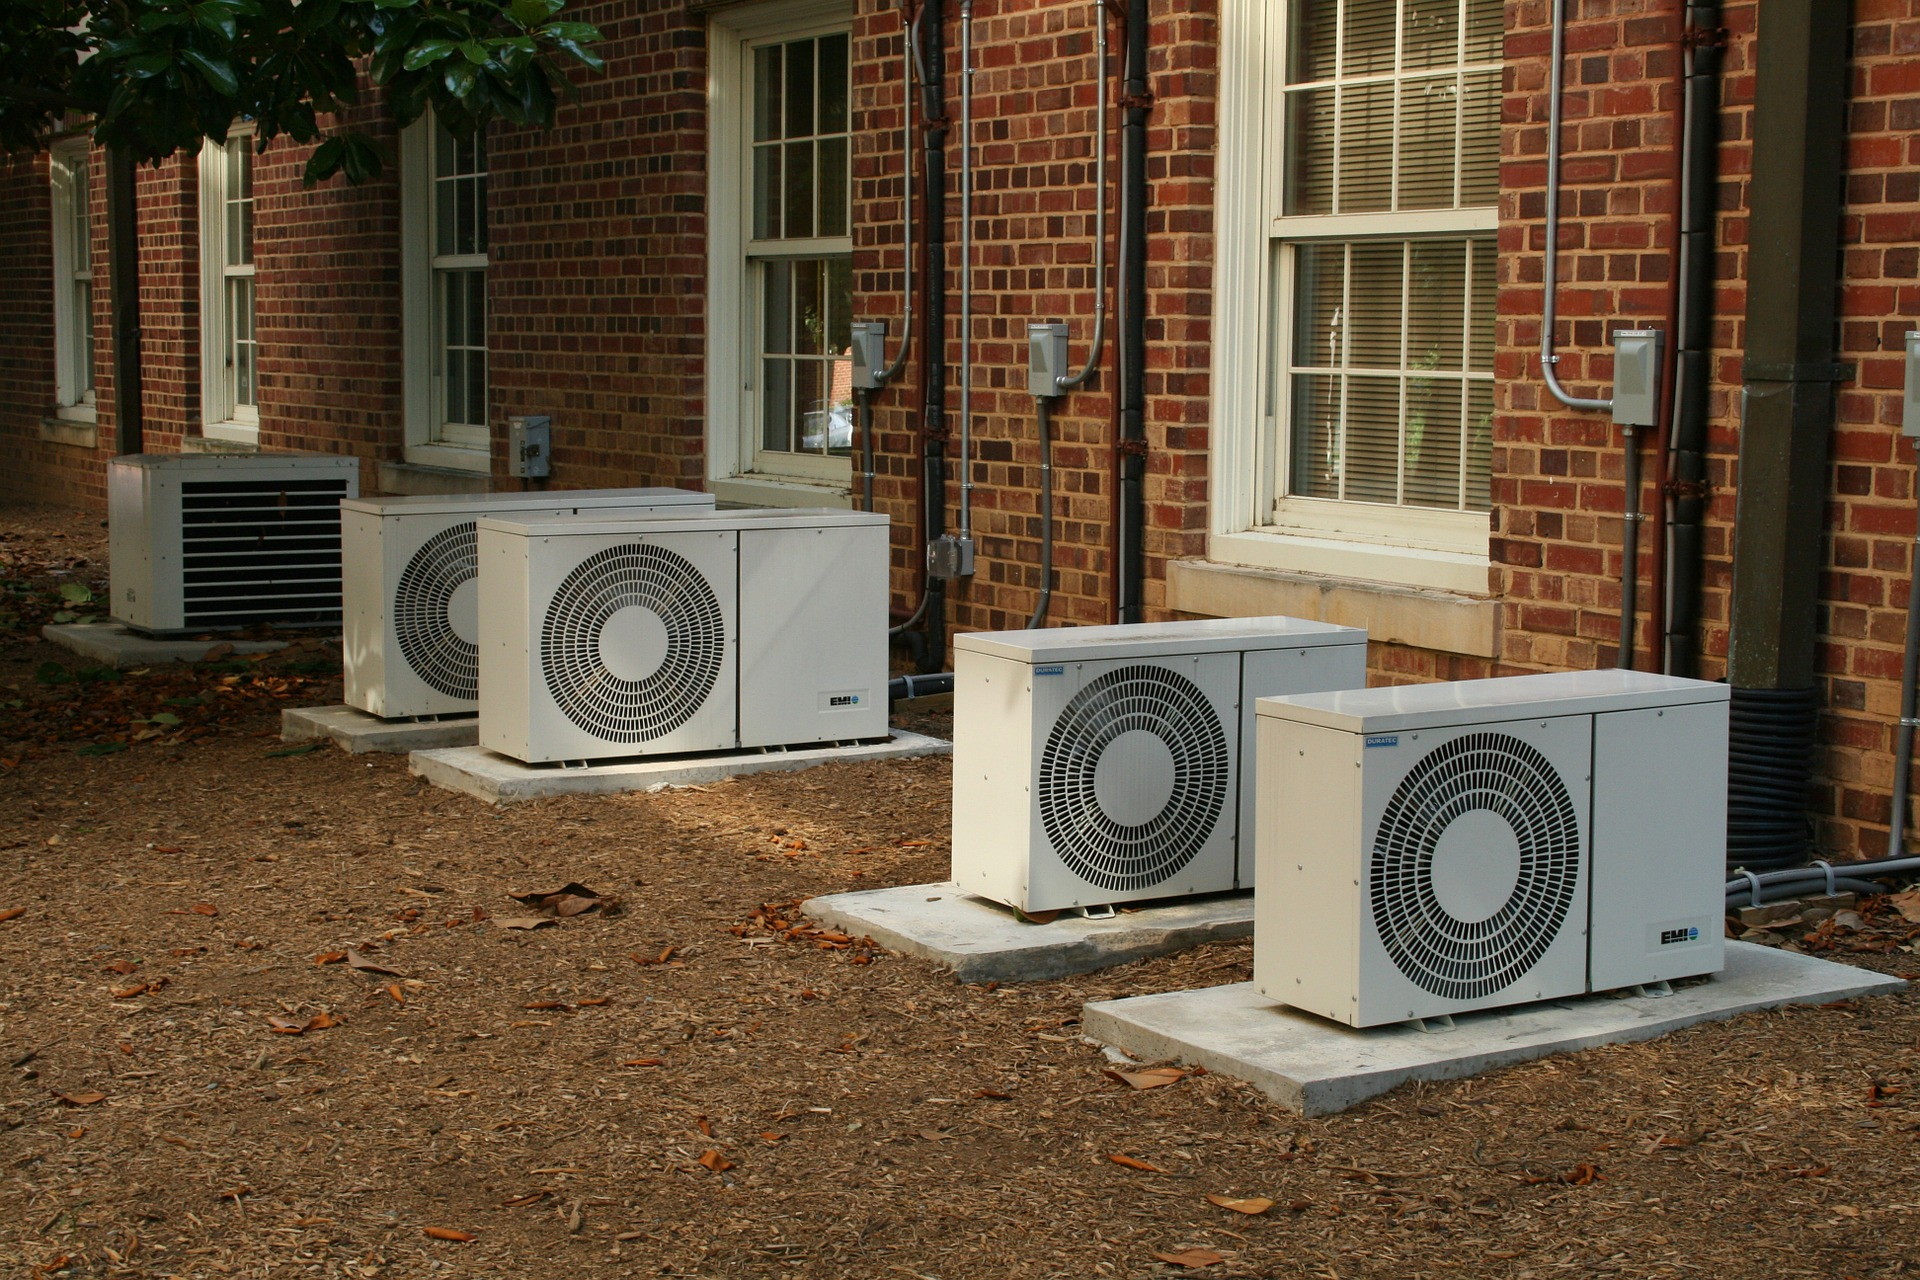 Don't Kill Your Chill: Simple Steps for Cleaning Your Dirty Air Conditioner